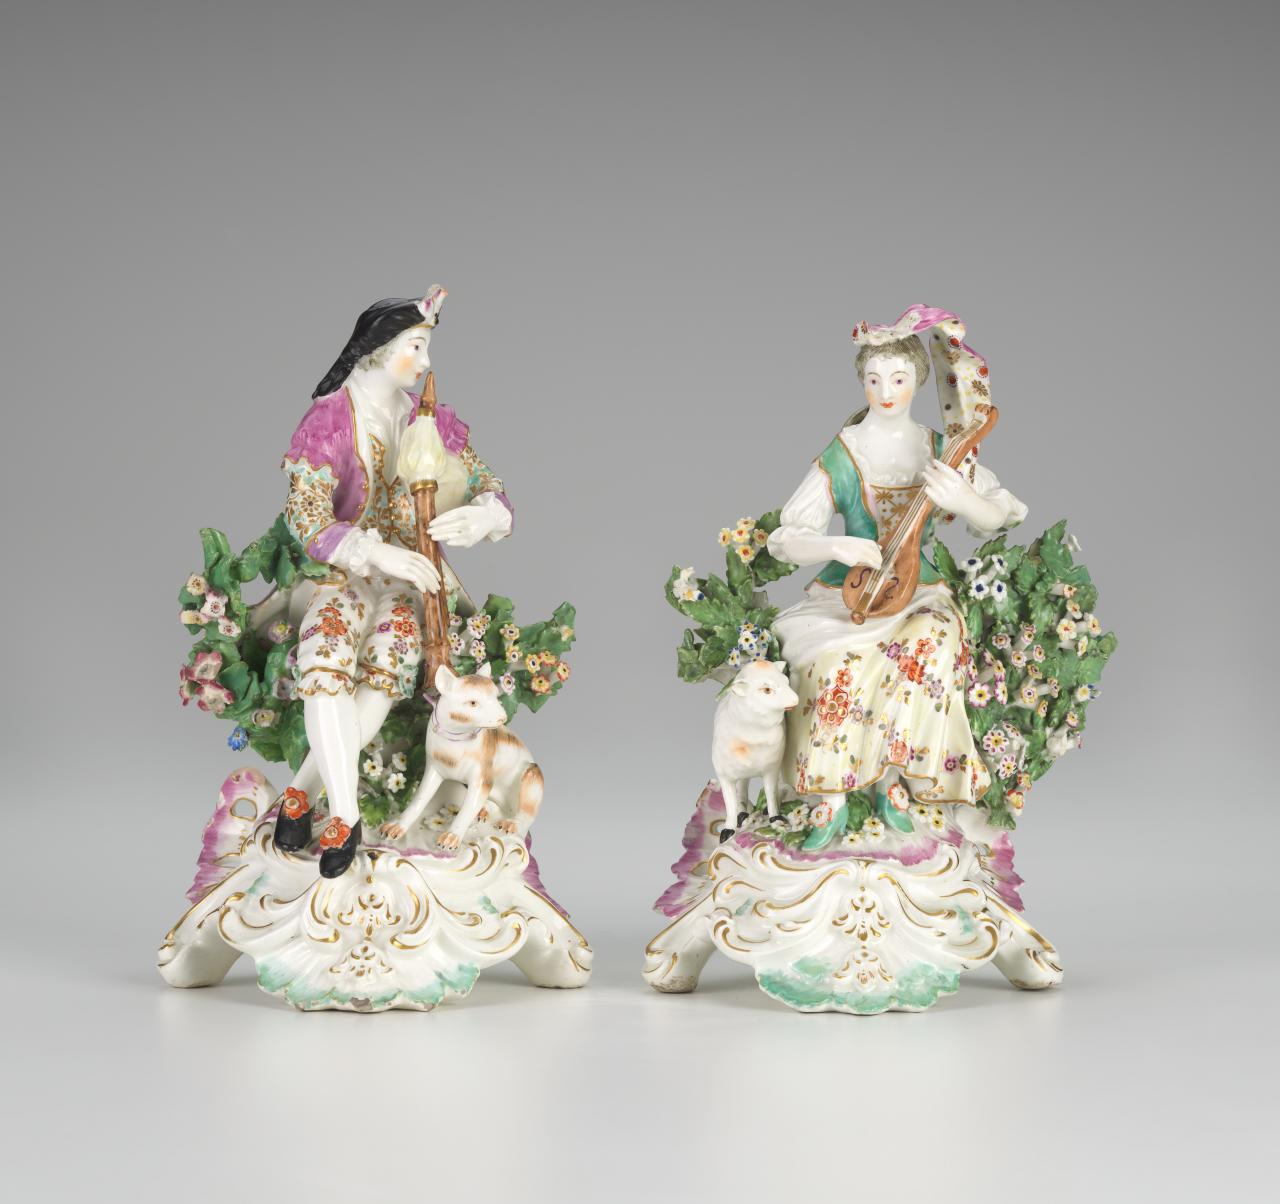 Pair of musicians, figures